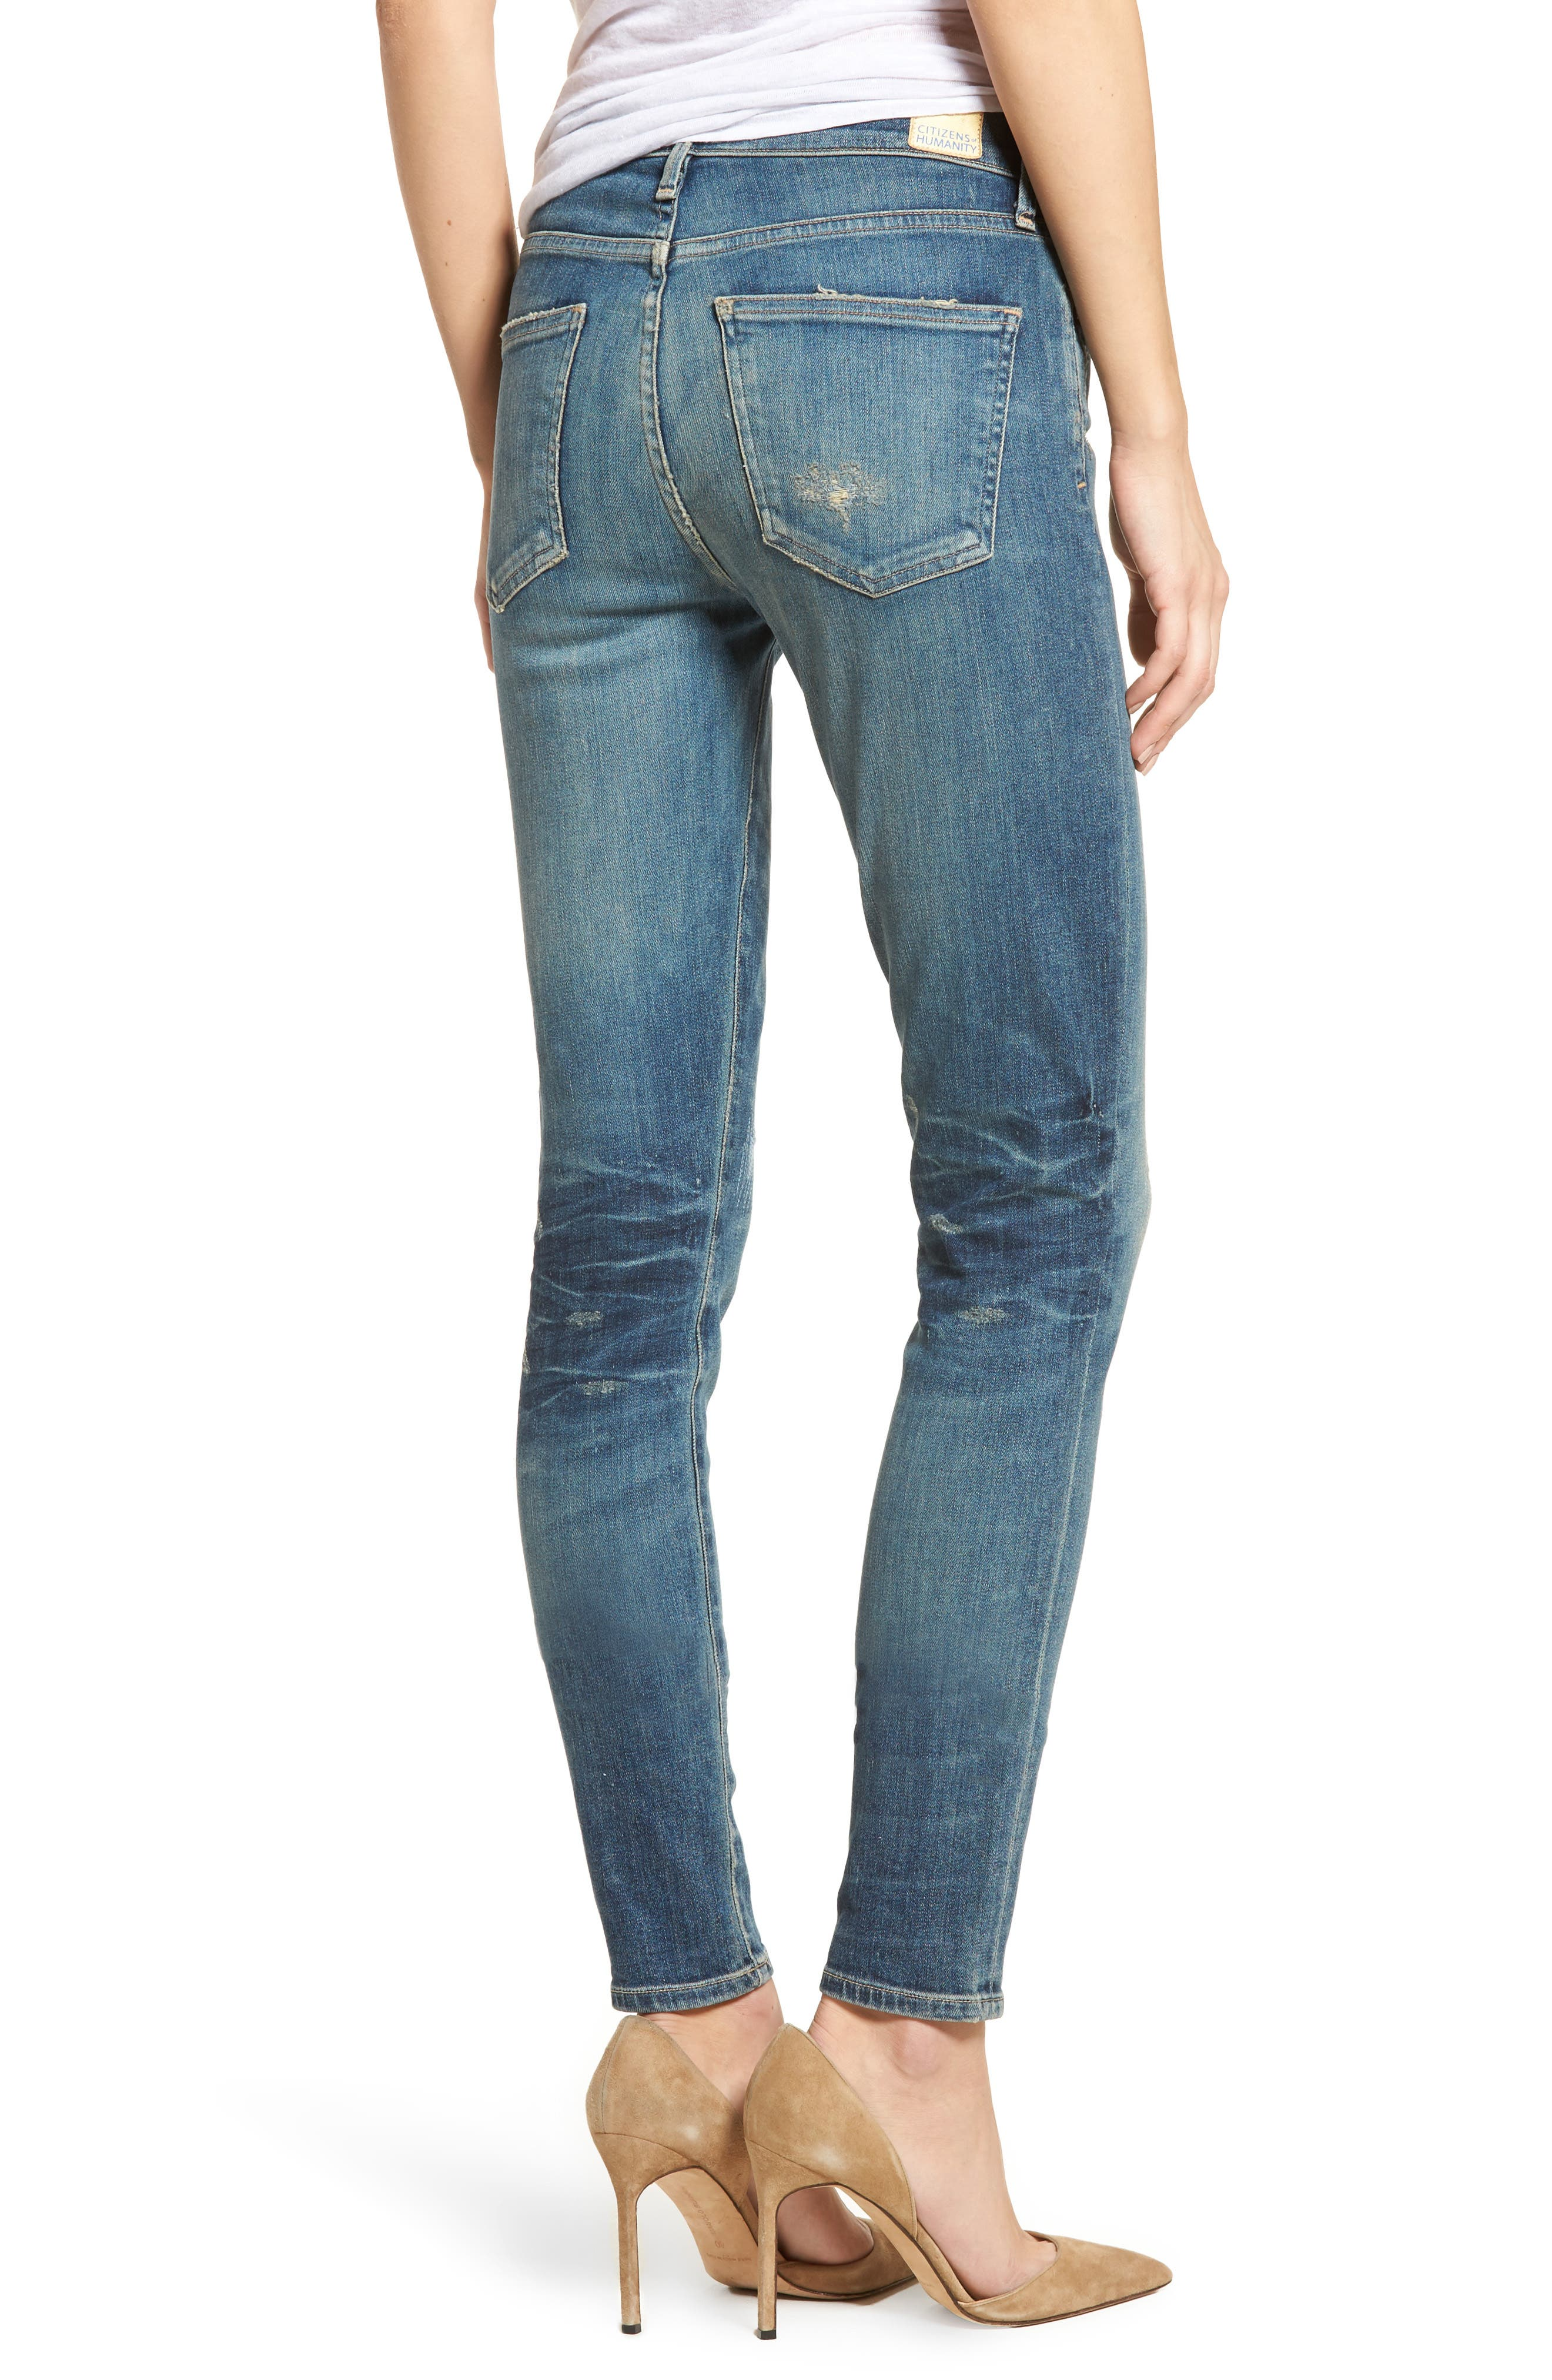 Alternate Image 2  - Citizens of Humanity Rocket High Waist Skinny Jeans (Rocker)